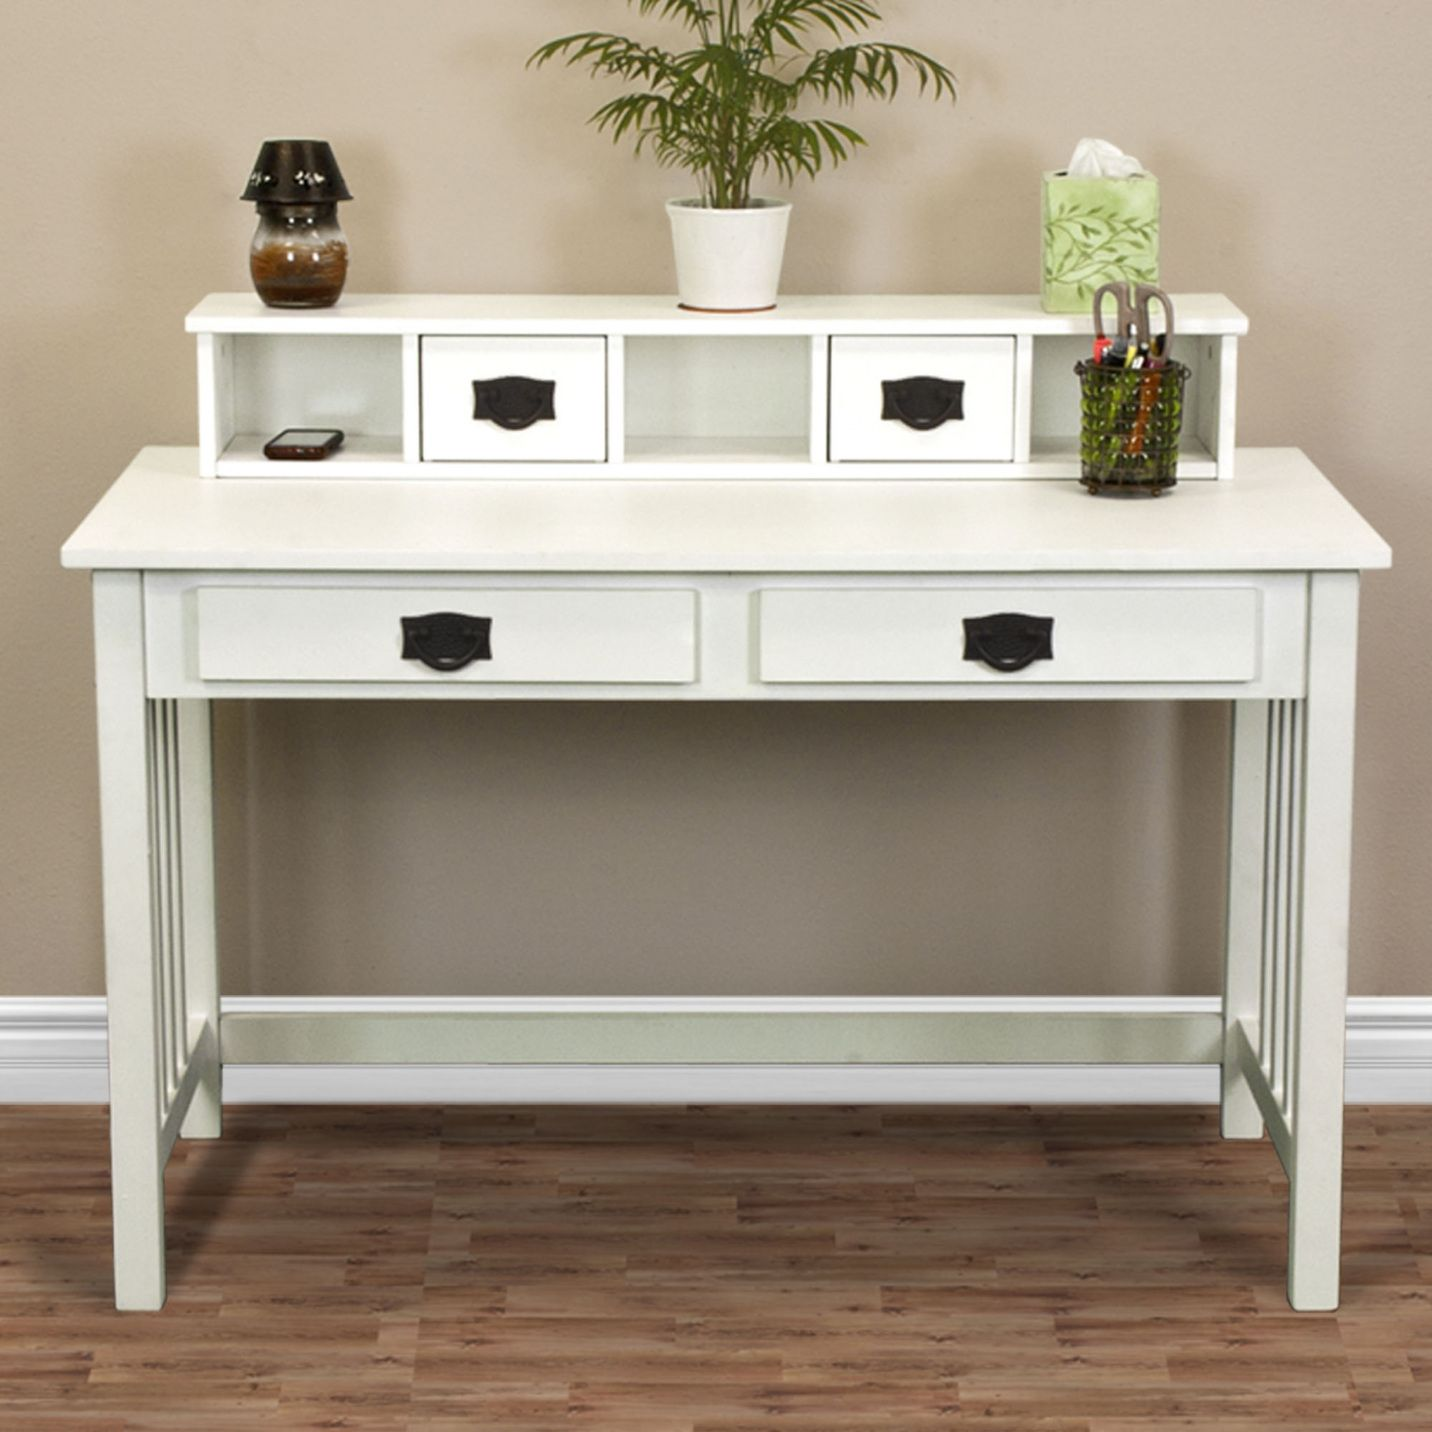 Walmart Office Desk Furniture - Best Home Office Furniture Check ...